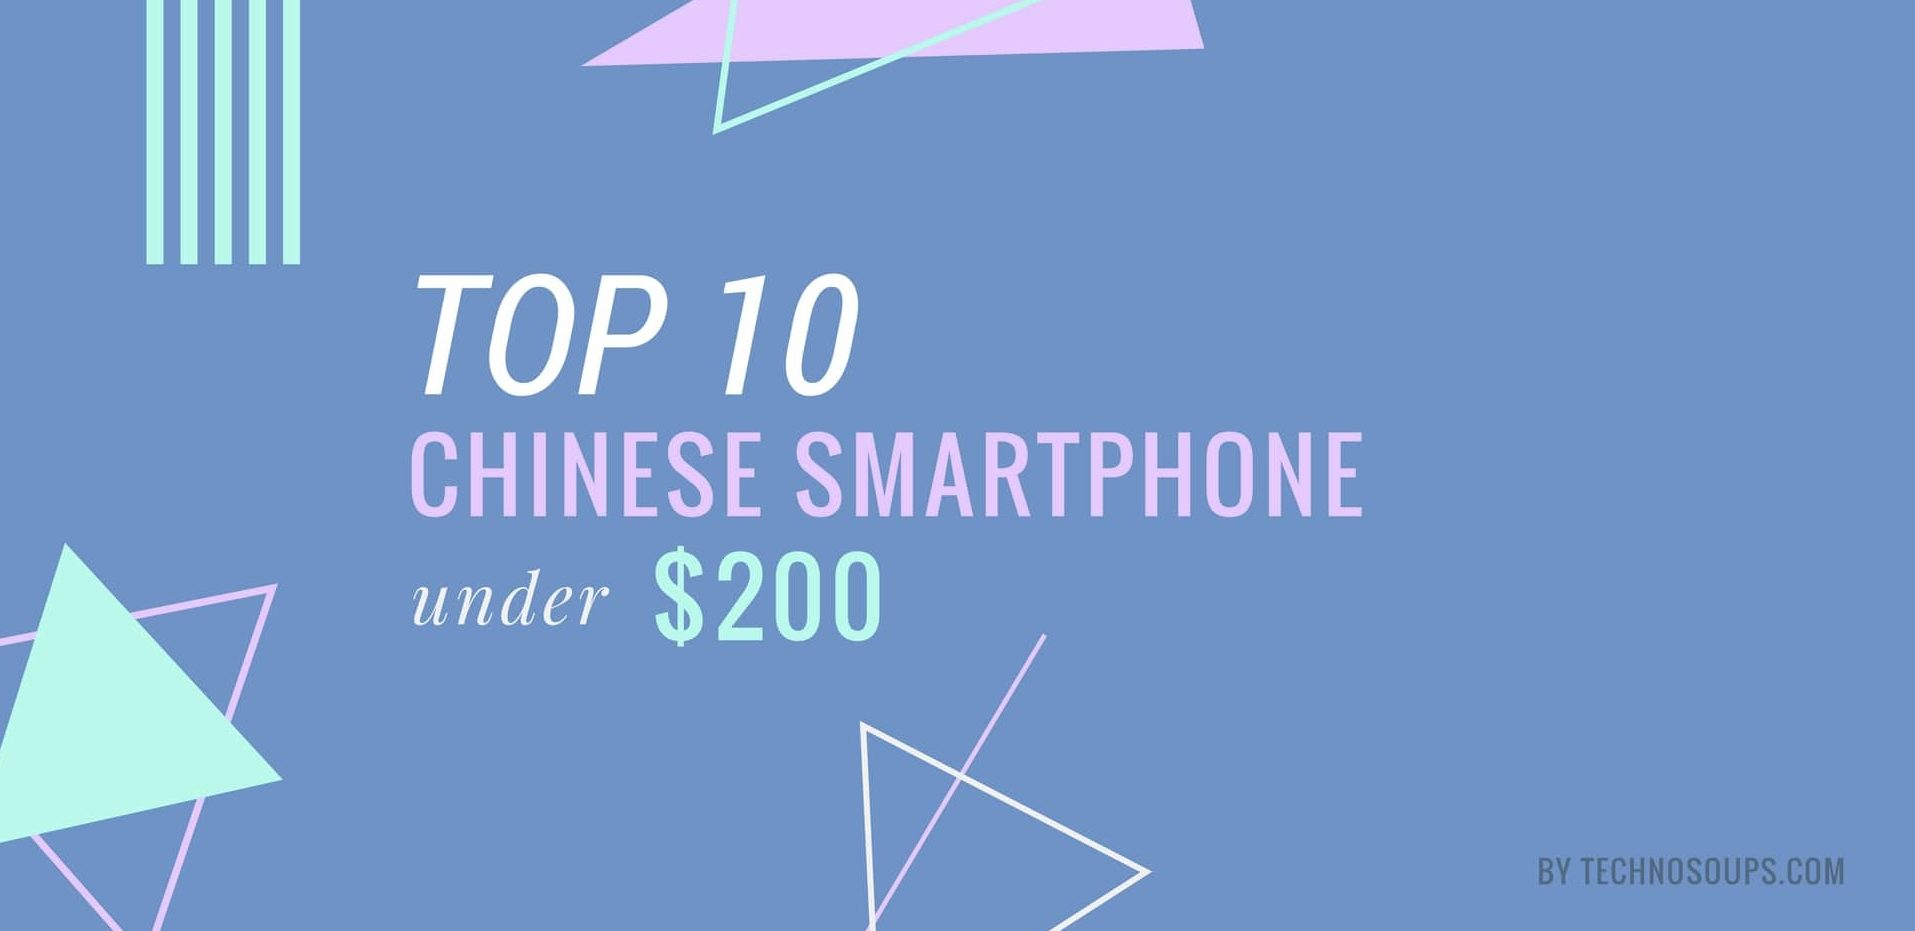 Gallagher best chinese smartphone under 200 dollars such